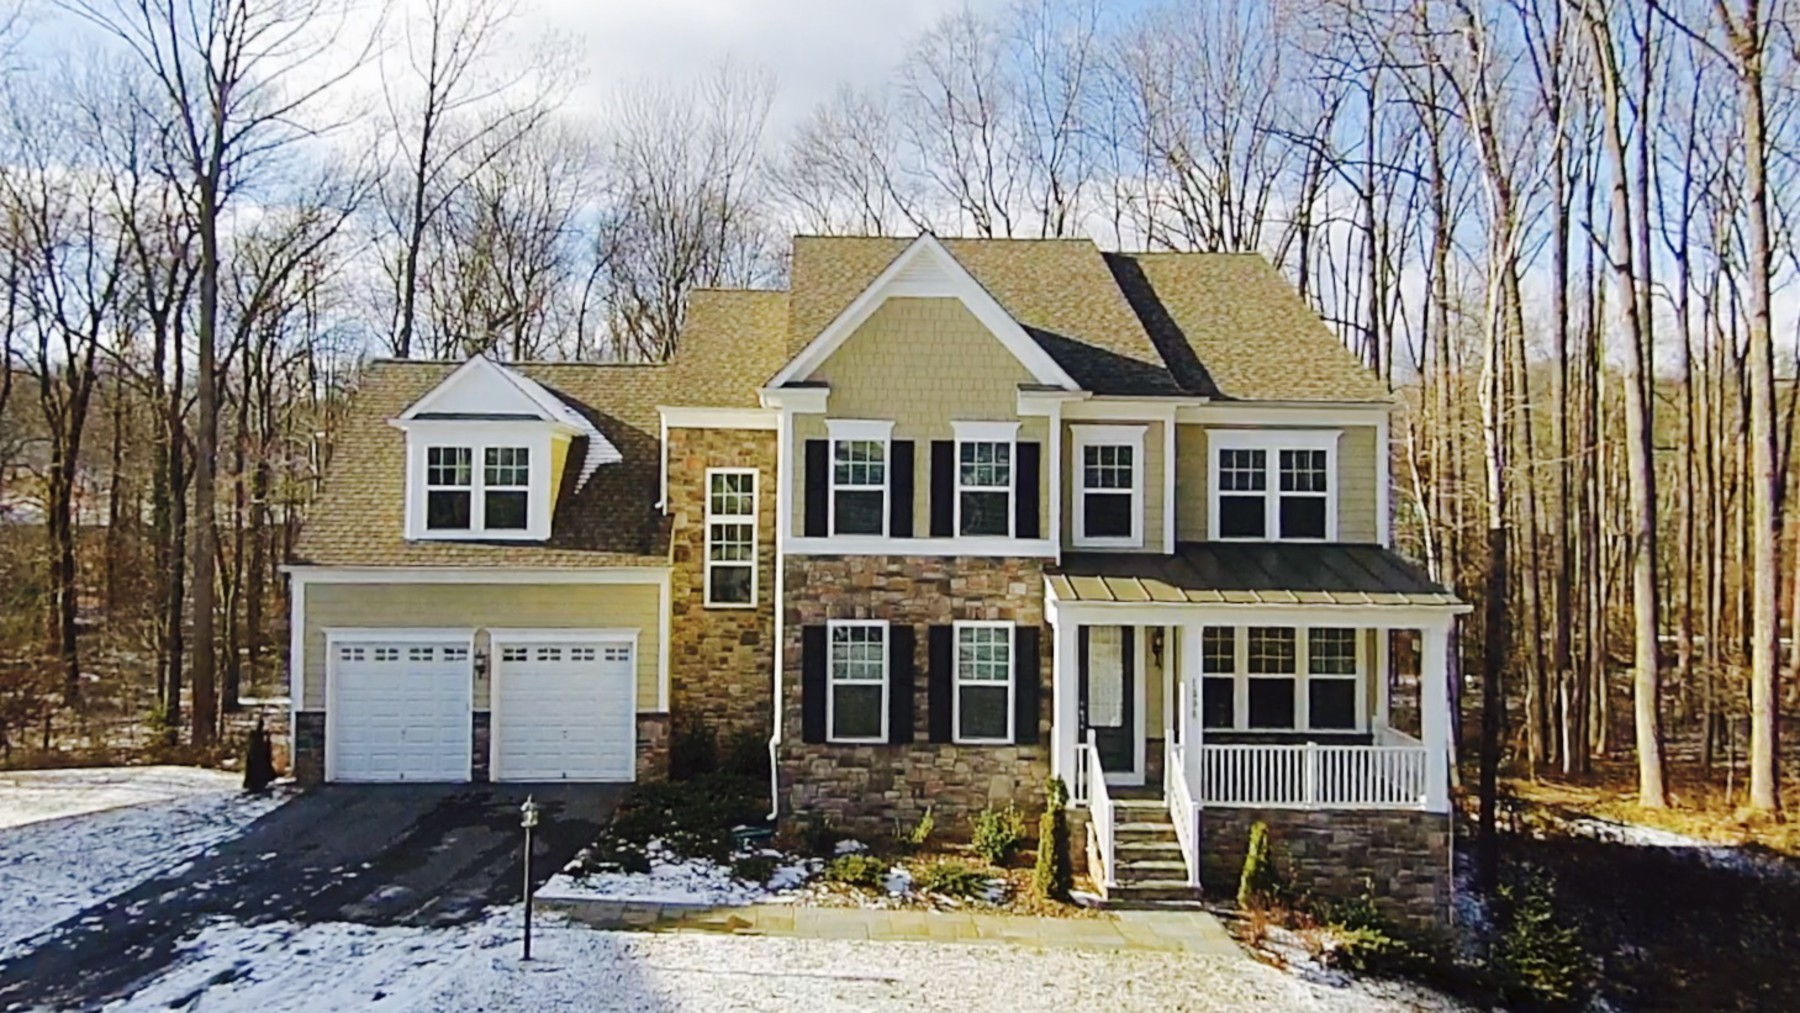 Single Family Home for Sale at 1294 Scotts Run Road, Mclean McLean, Virginia, 22102 United States